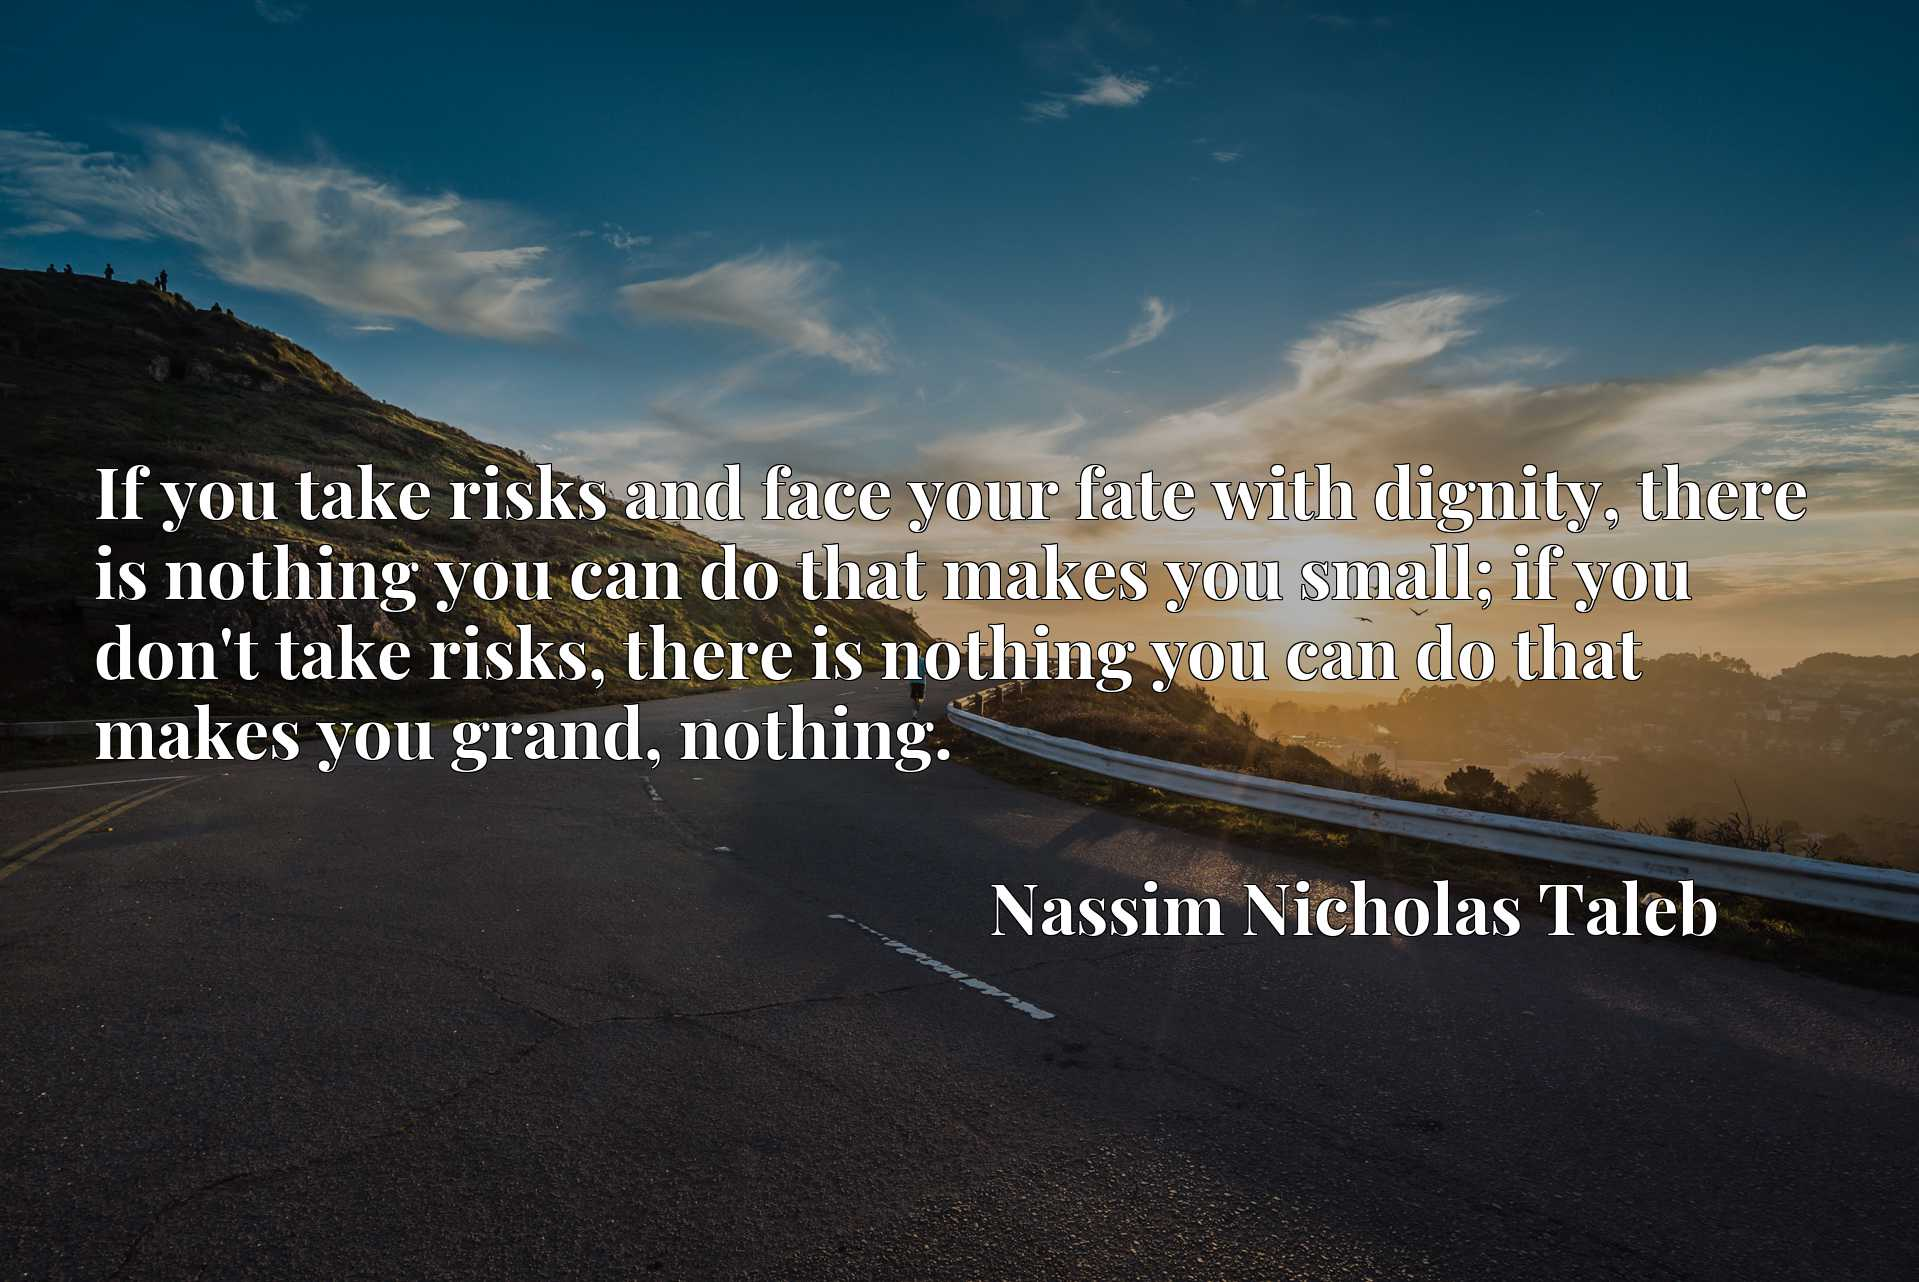 If you take risks and face your fate with dignity, there is nothing you can do that makes you small; if you don't take risks, there is nothing you can do that makes you grand, nothing.